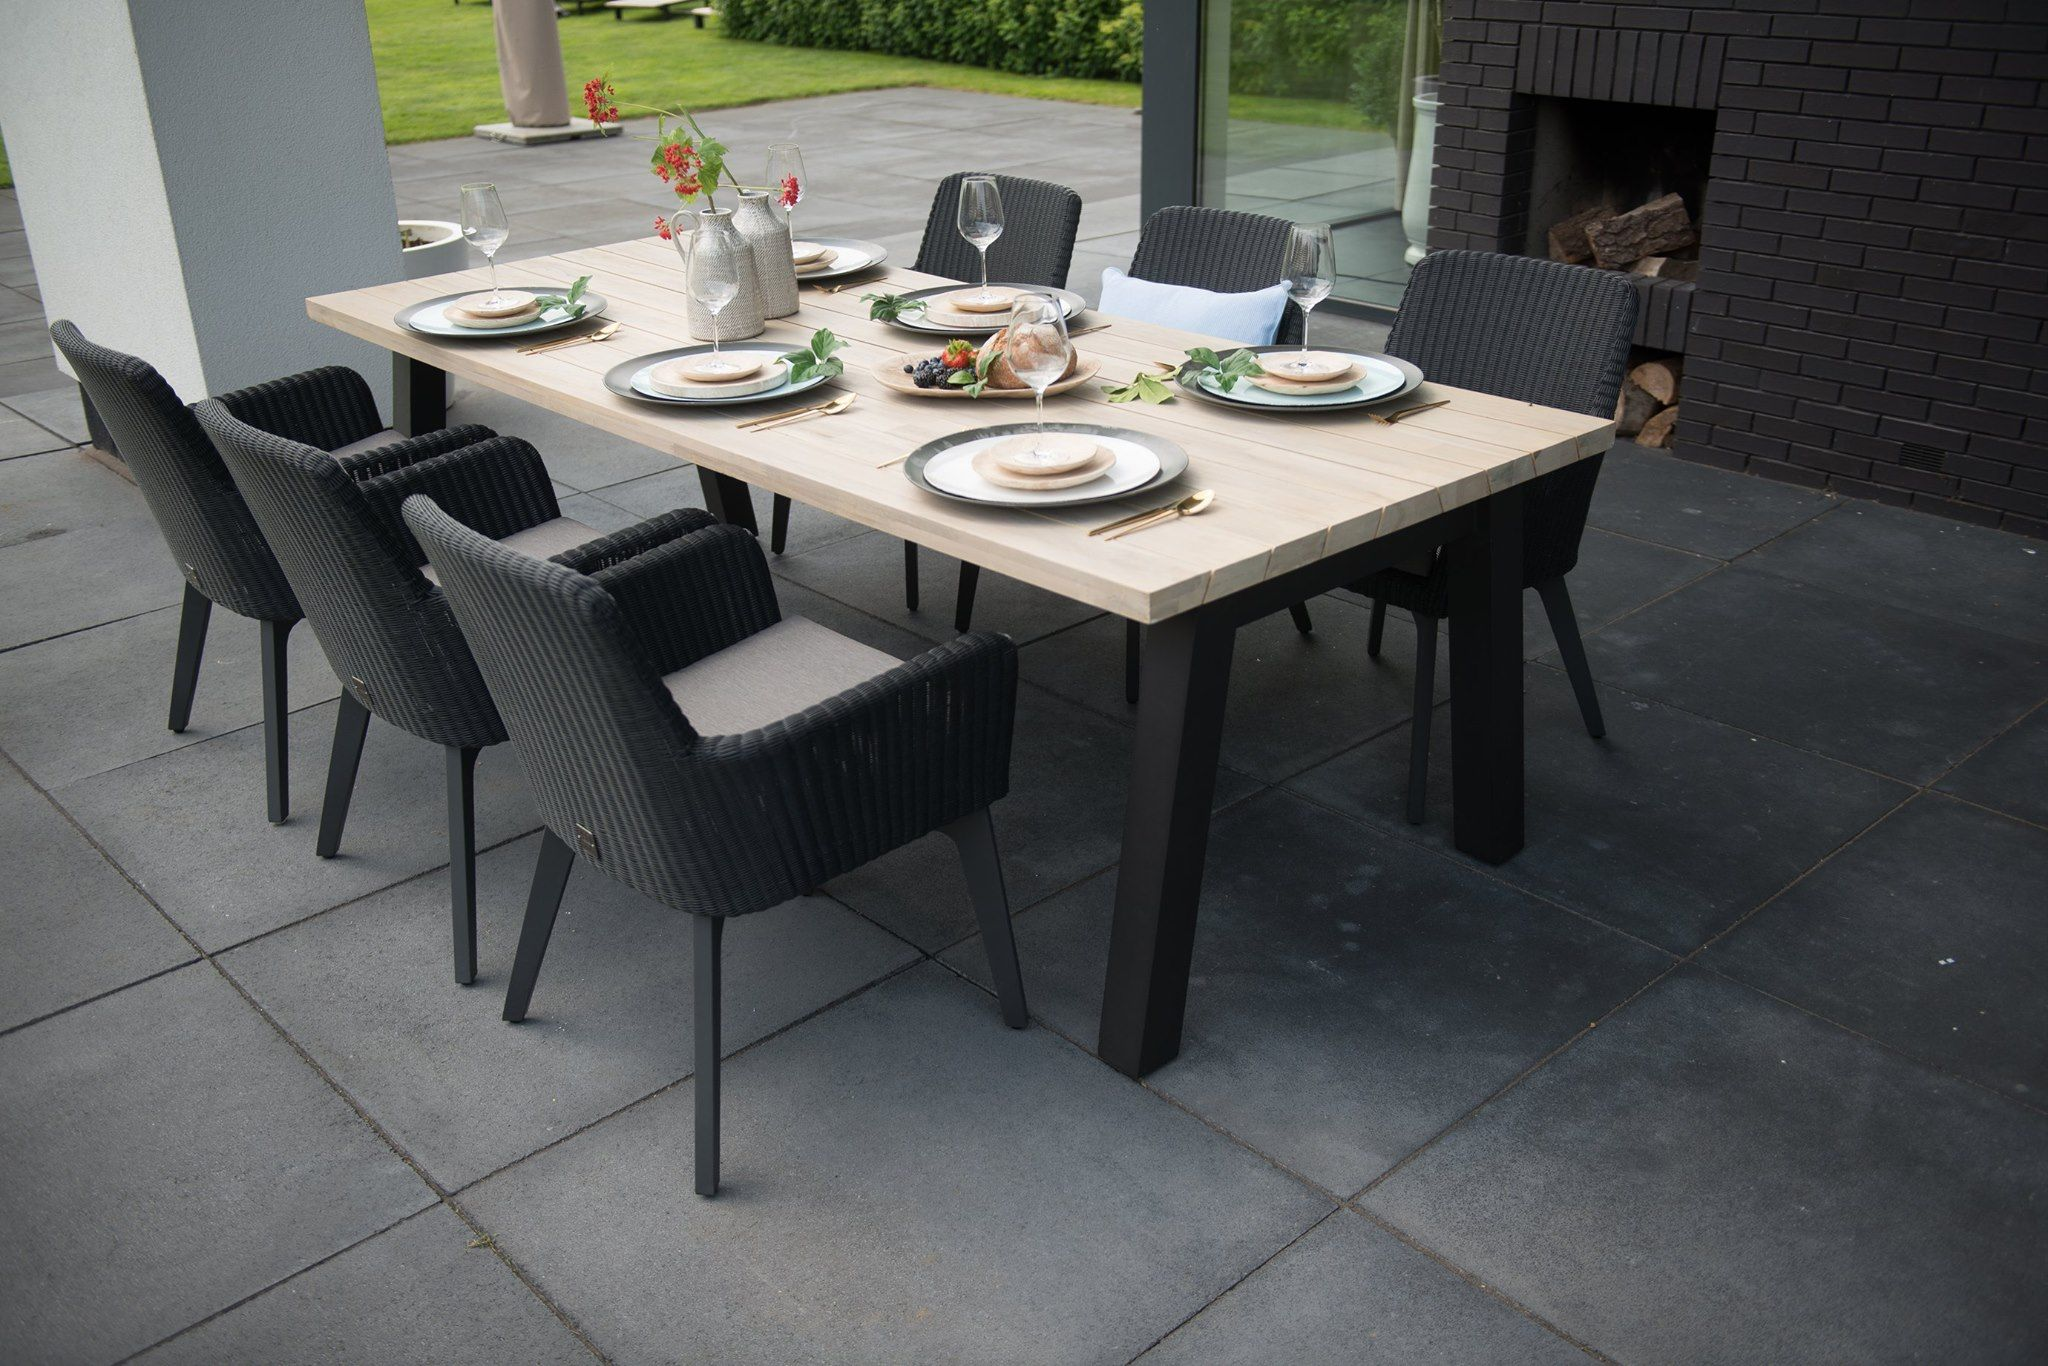 eb56c97855 Lisboa and Derby dining set, Teak and aluminium table with six dining chairs,  for prices and brochure visit our website at www.samuioutdoorfurniture.com  ...